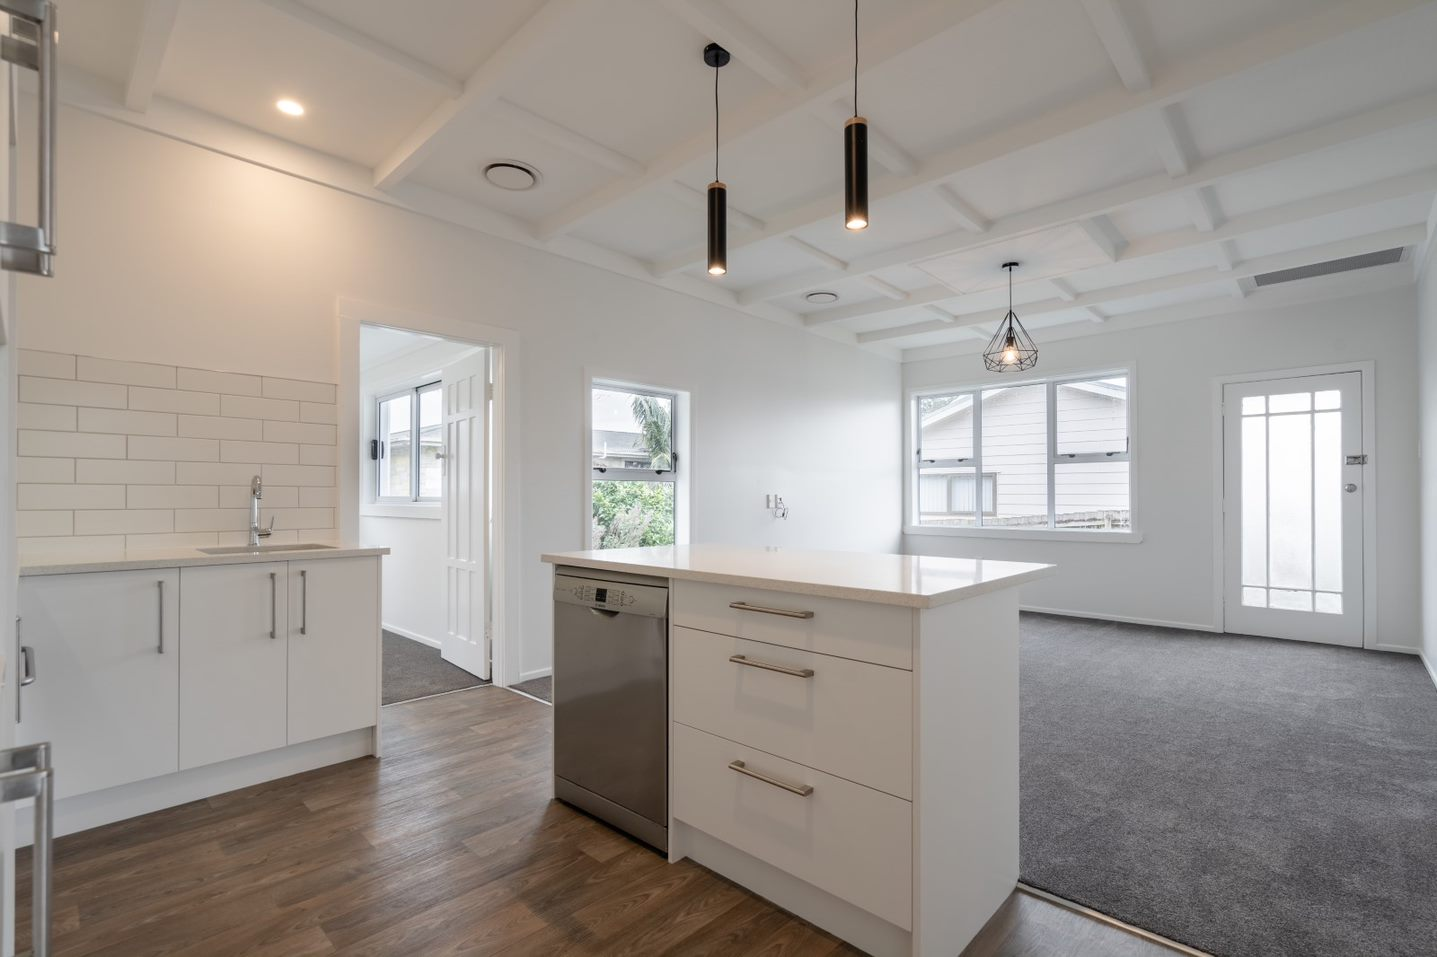 newly renovated kitchen and licing areas